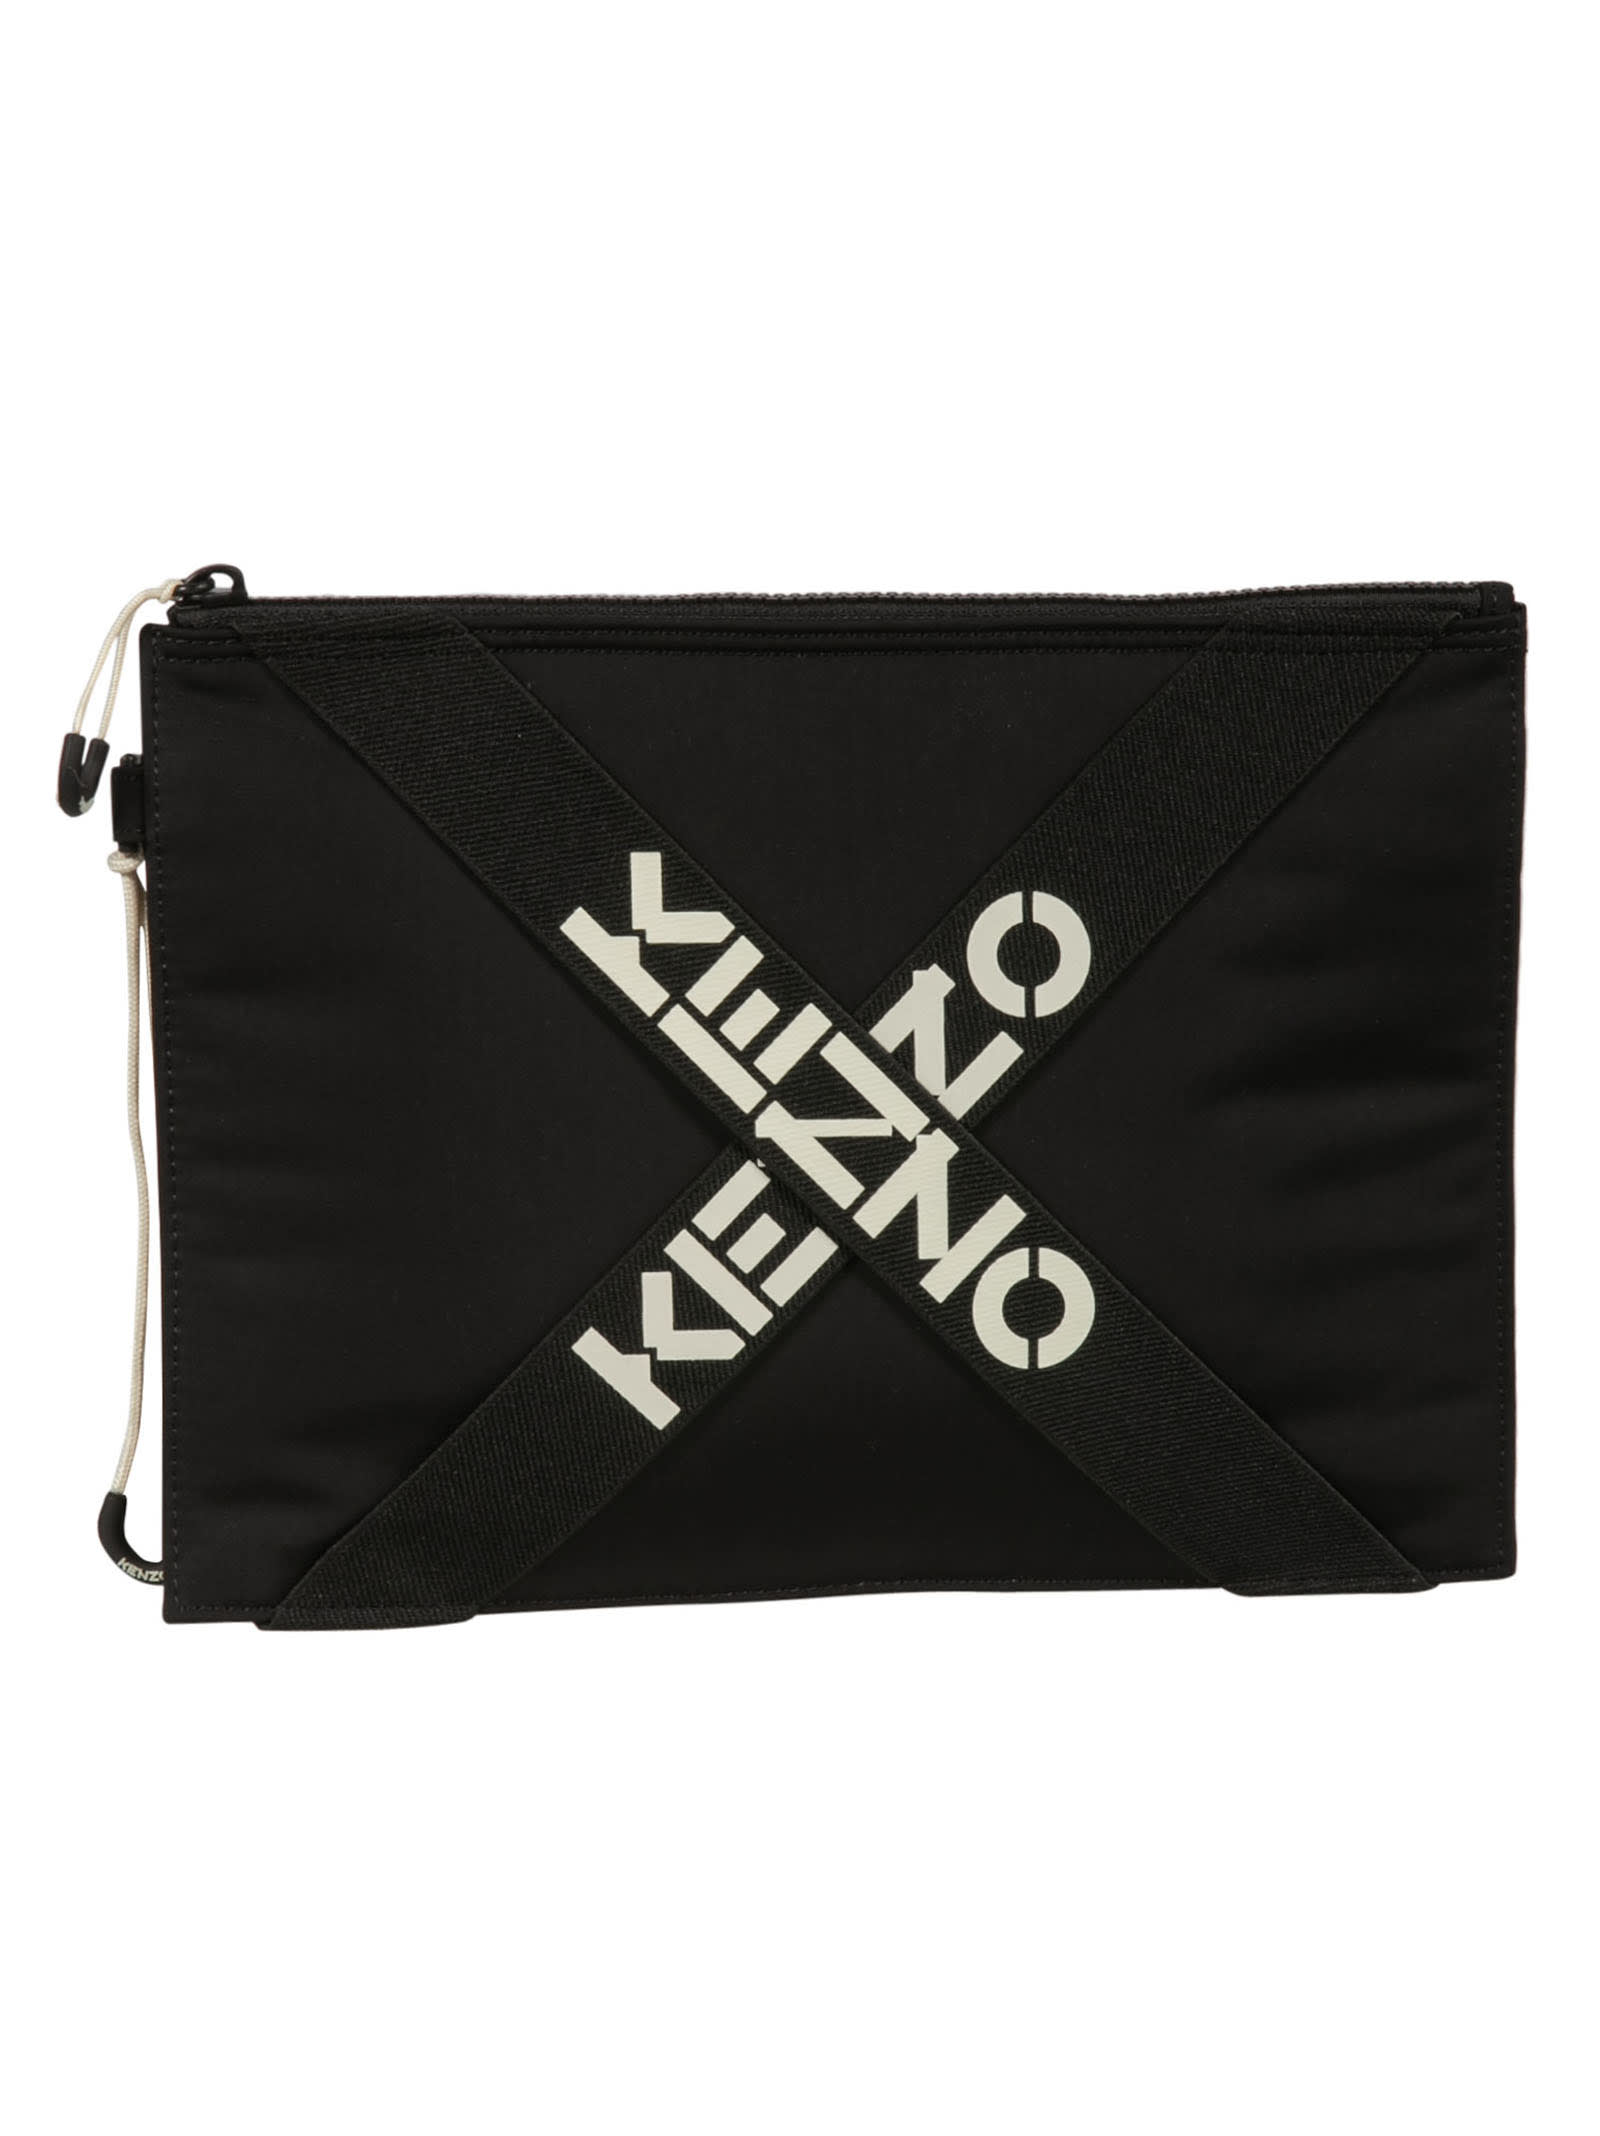 Kenzo CLASSIC LARGE CLUTCH